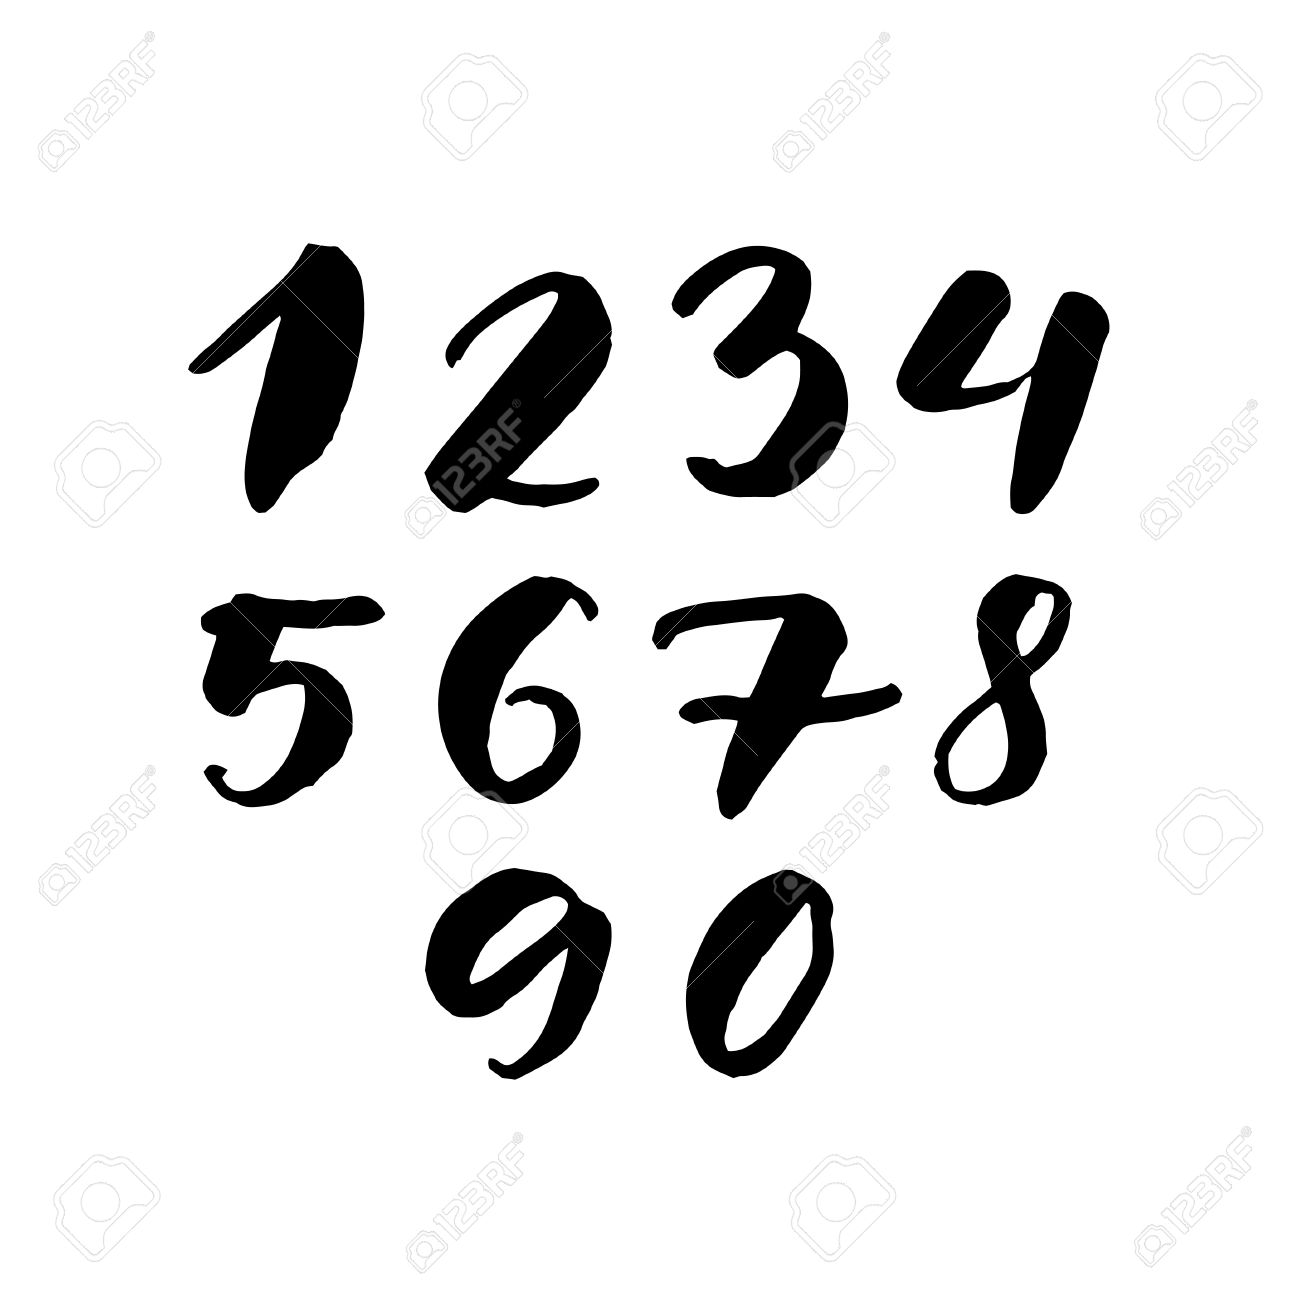 Black Handwritten Numbers 1 2 3 4 5 6 7